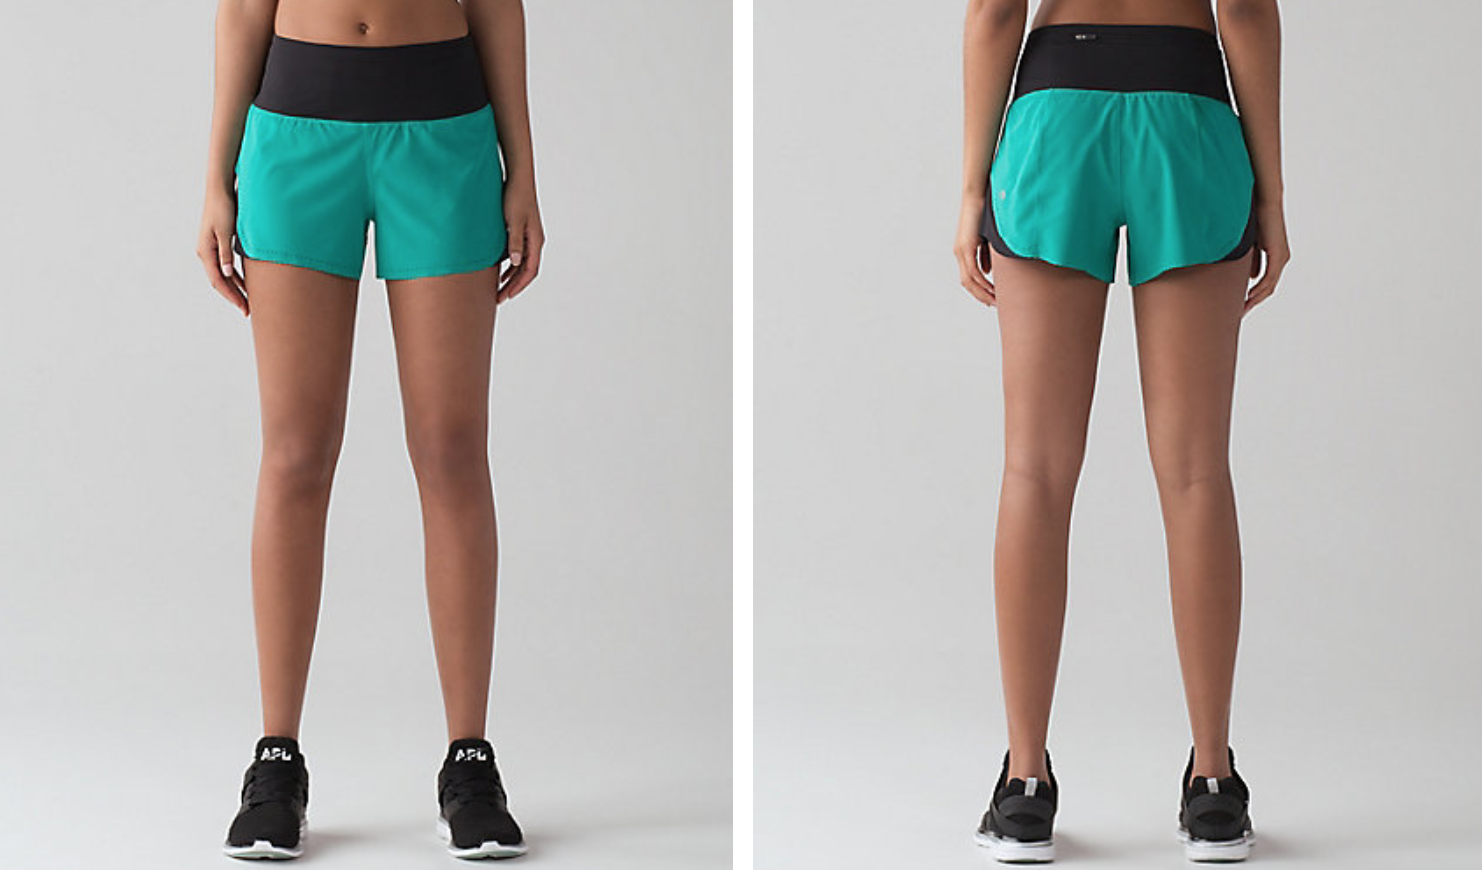 https://api.shopstyle.com/action/apiVisitRetailer?url=https%3A%2F%2Fshop.lululemon.com%2Fp%2Fwomen-shorts%2FSmooth-Stride-Short%2F_%2Fprod8430780%3Frcnt%3D63%26N%3D1z13ziiZ7vf%26cnt%3D85%26color%3DLW7AD8S_028930&site=www.shopstyle.ca&pid=uid6784-25288972-7